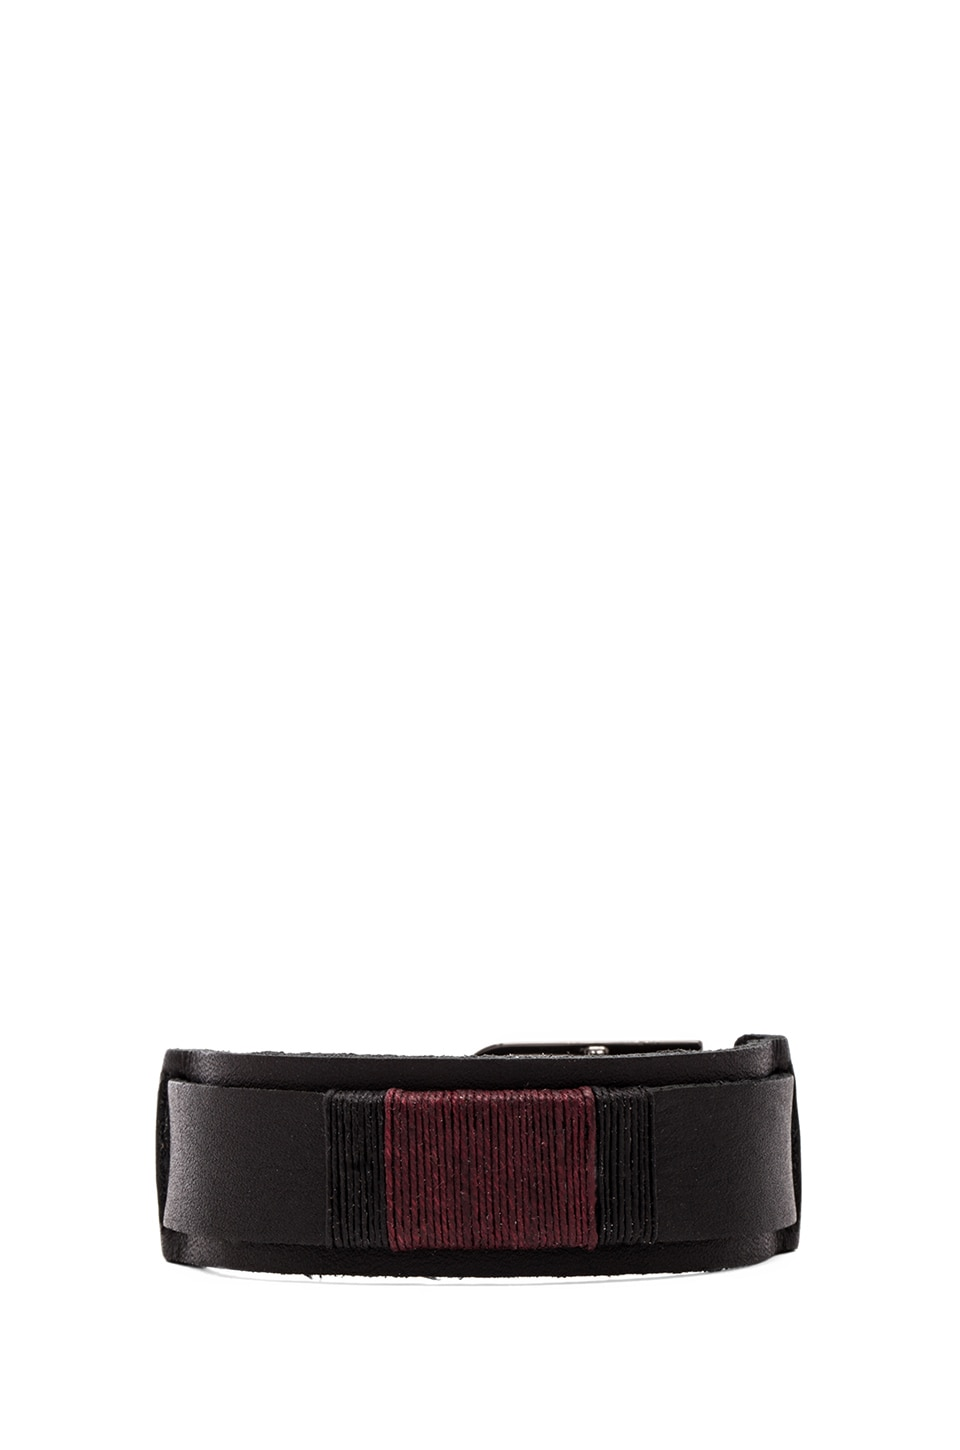 griffin Colton Slim Cuff in Burgundy & Black